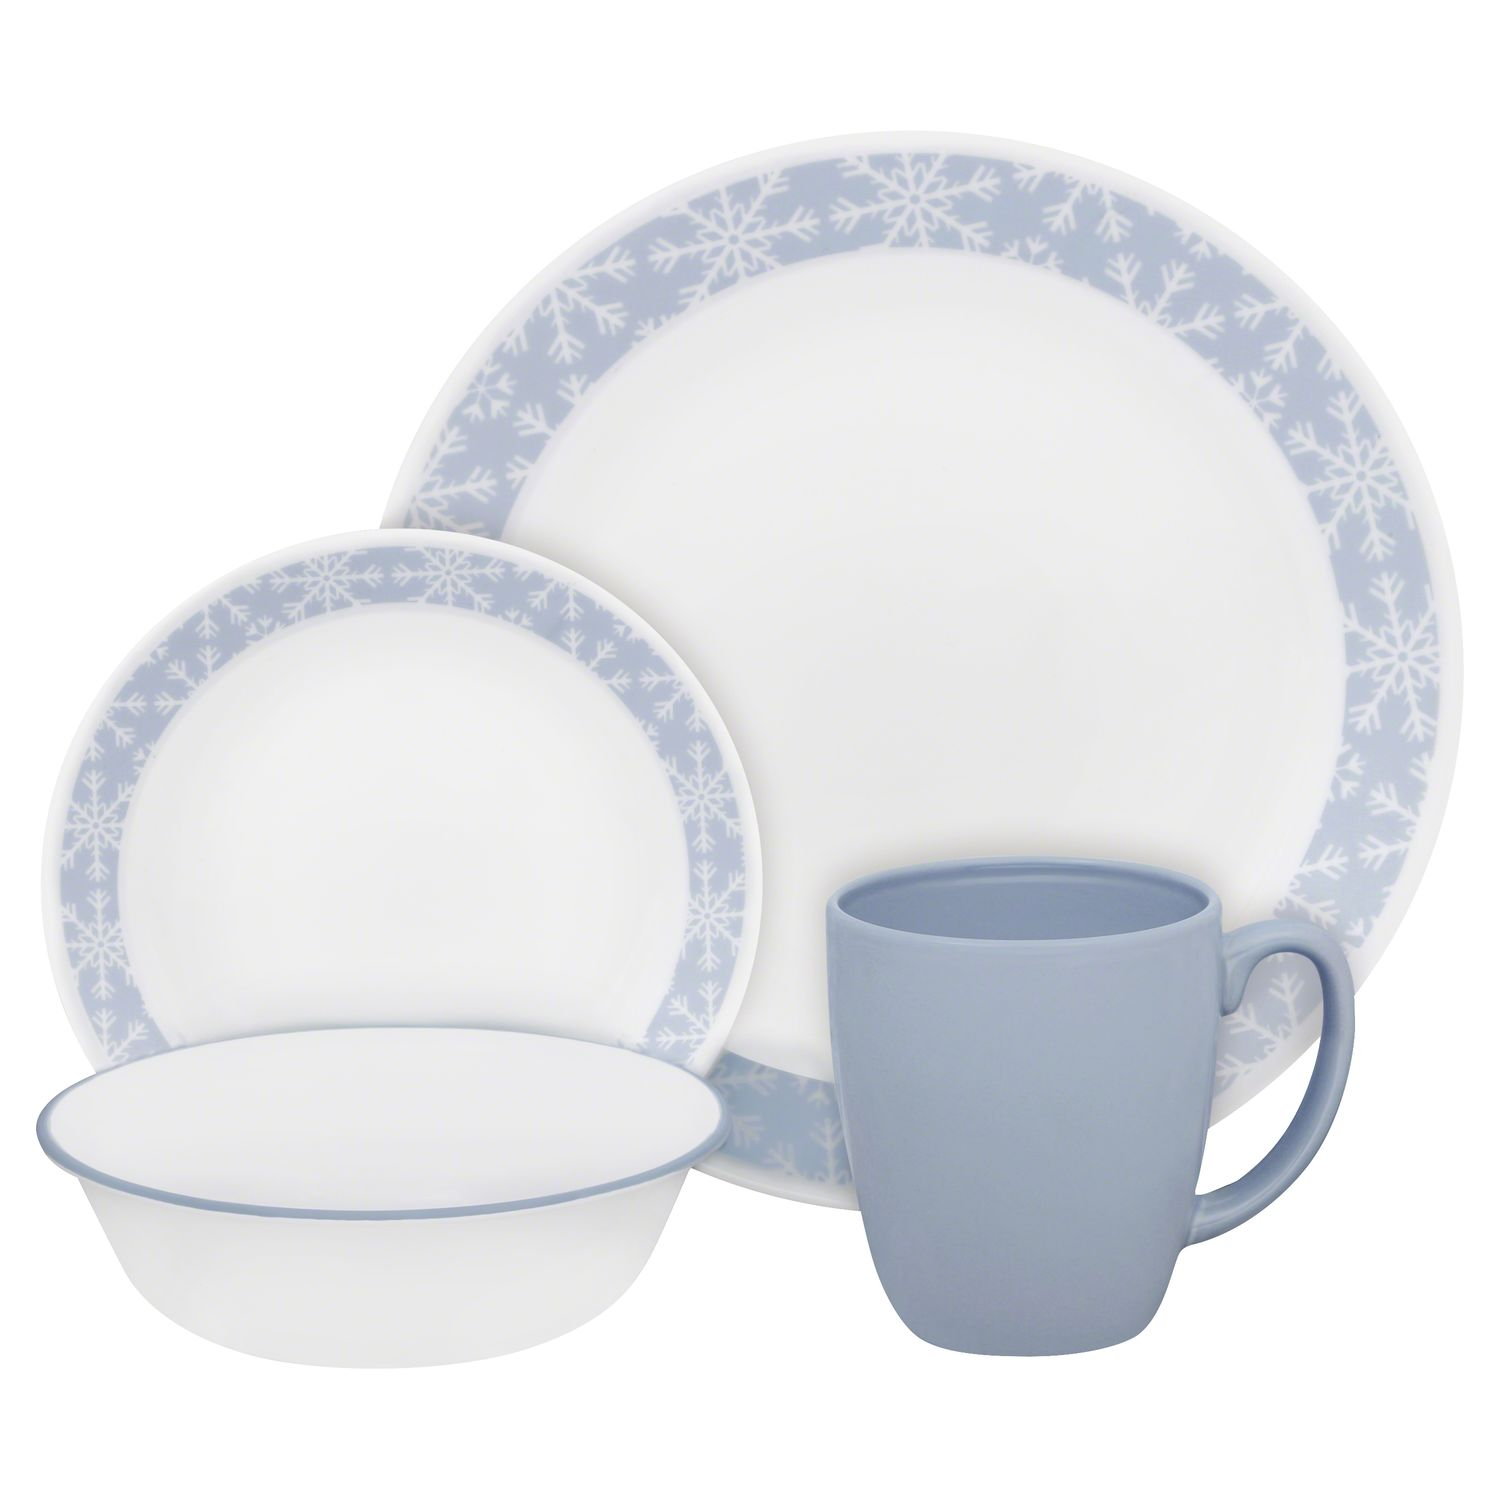 Corelle Holiday Collection 16-pc Dinnerware Set Review   Corelle ...